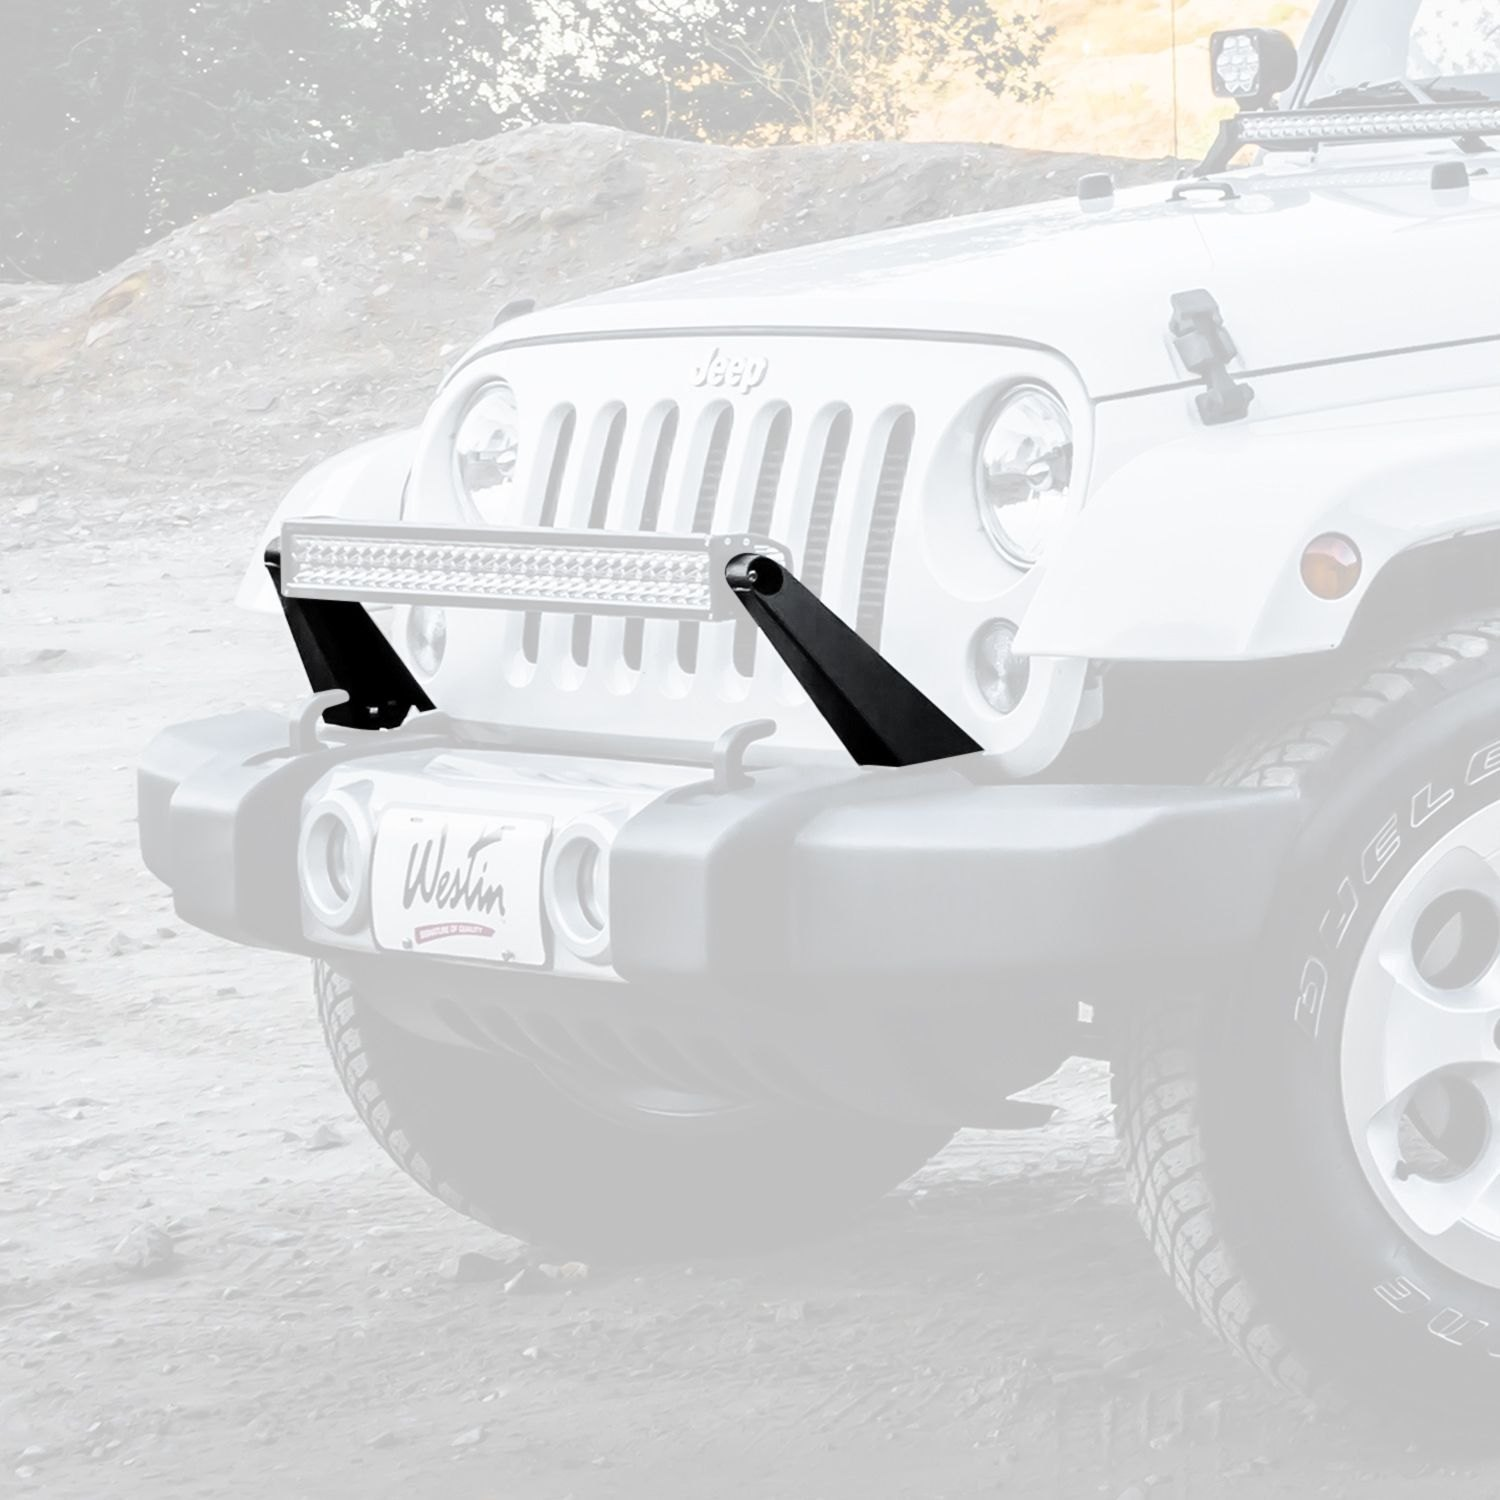 Westin Jeep Wrangler 2007 Hd Series Bumper Mount For 30 Led Light Mounts Textured Black Bar